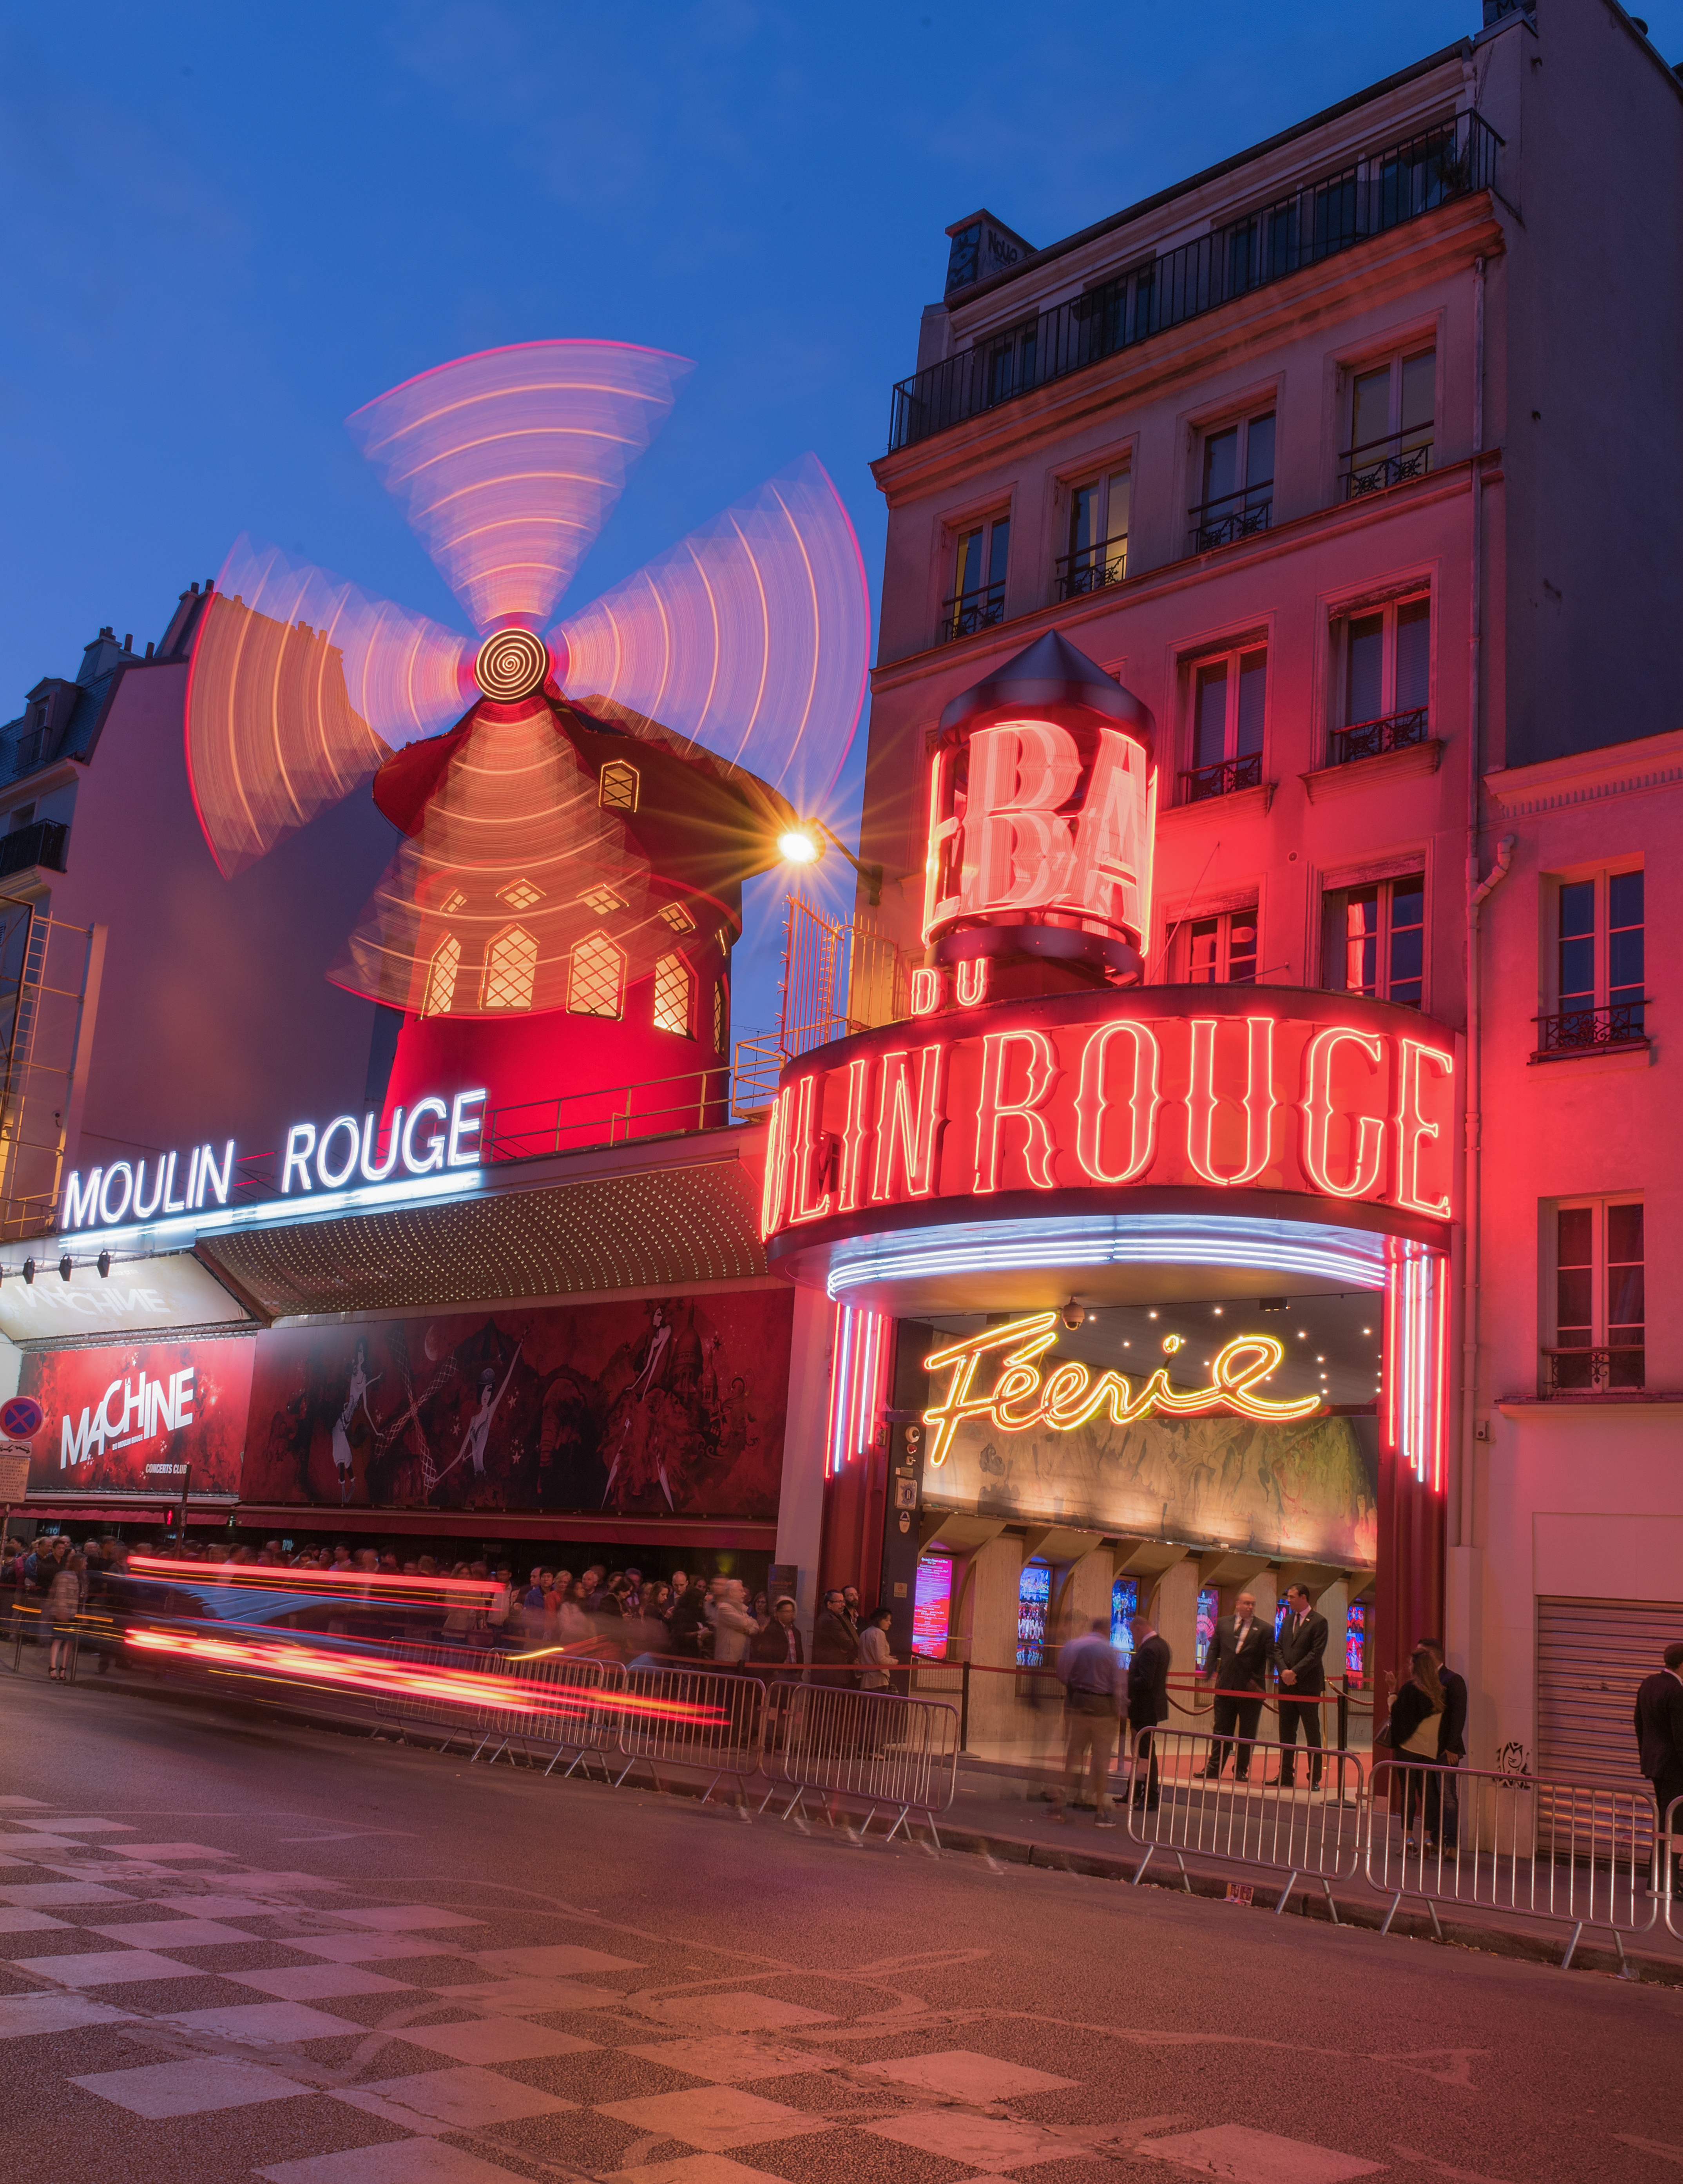 Moulin Rouge with car trails